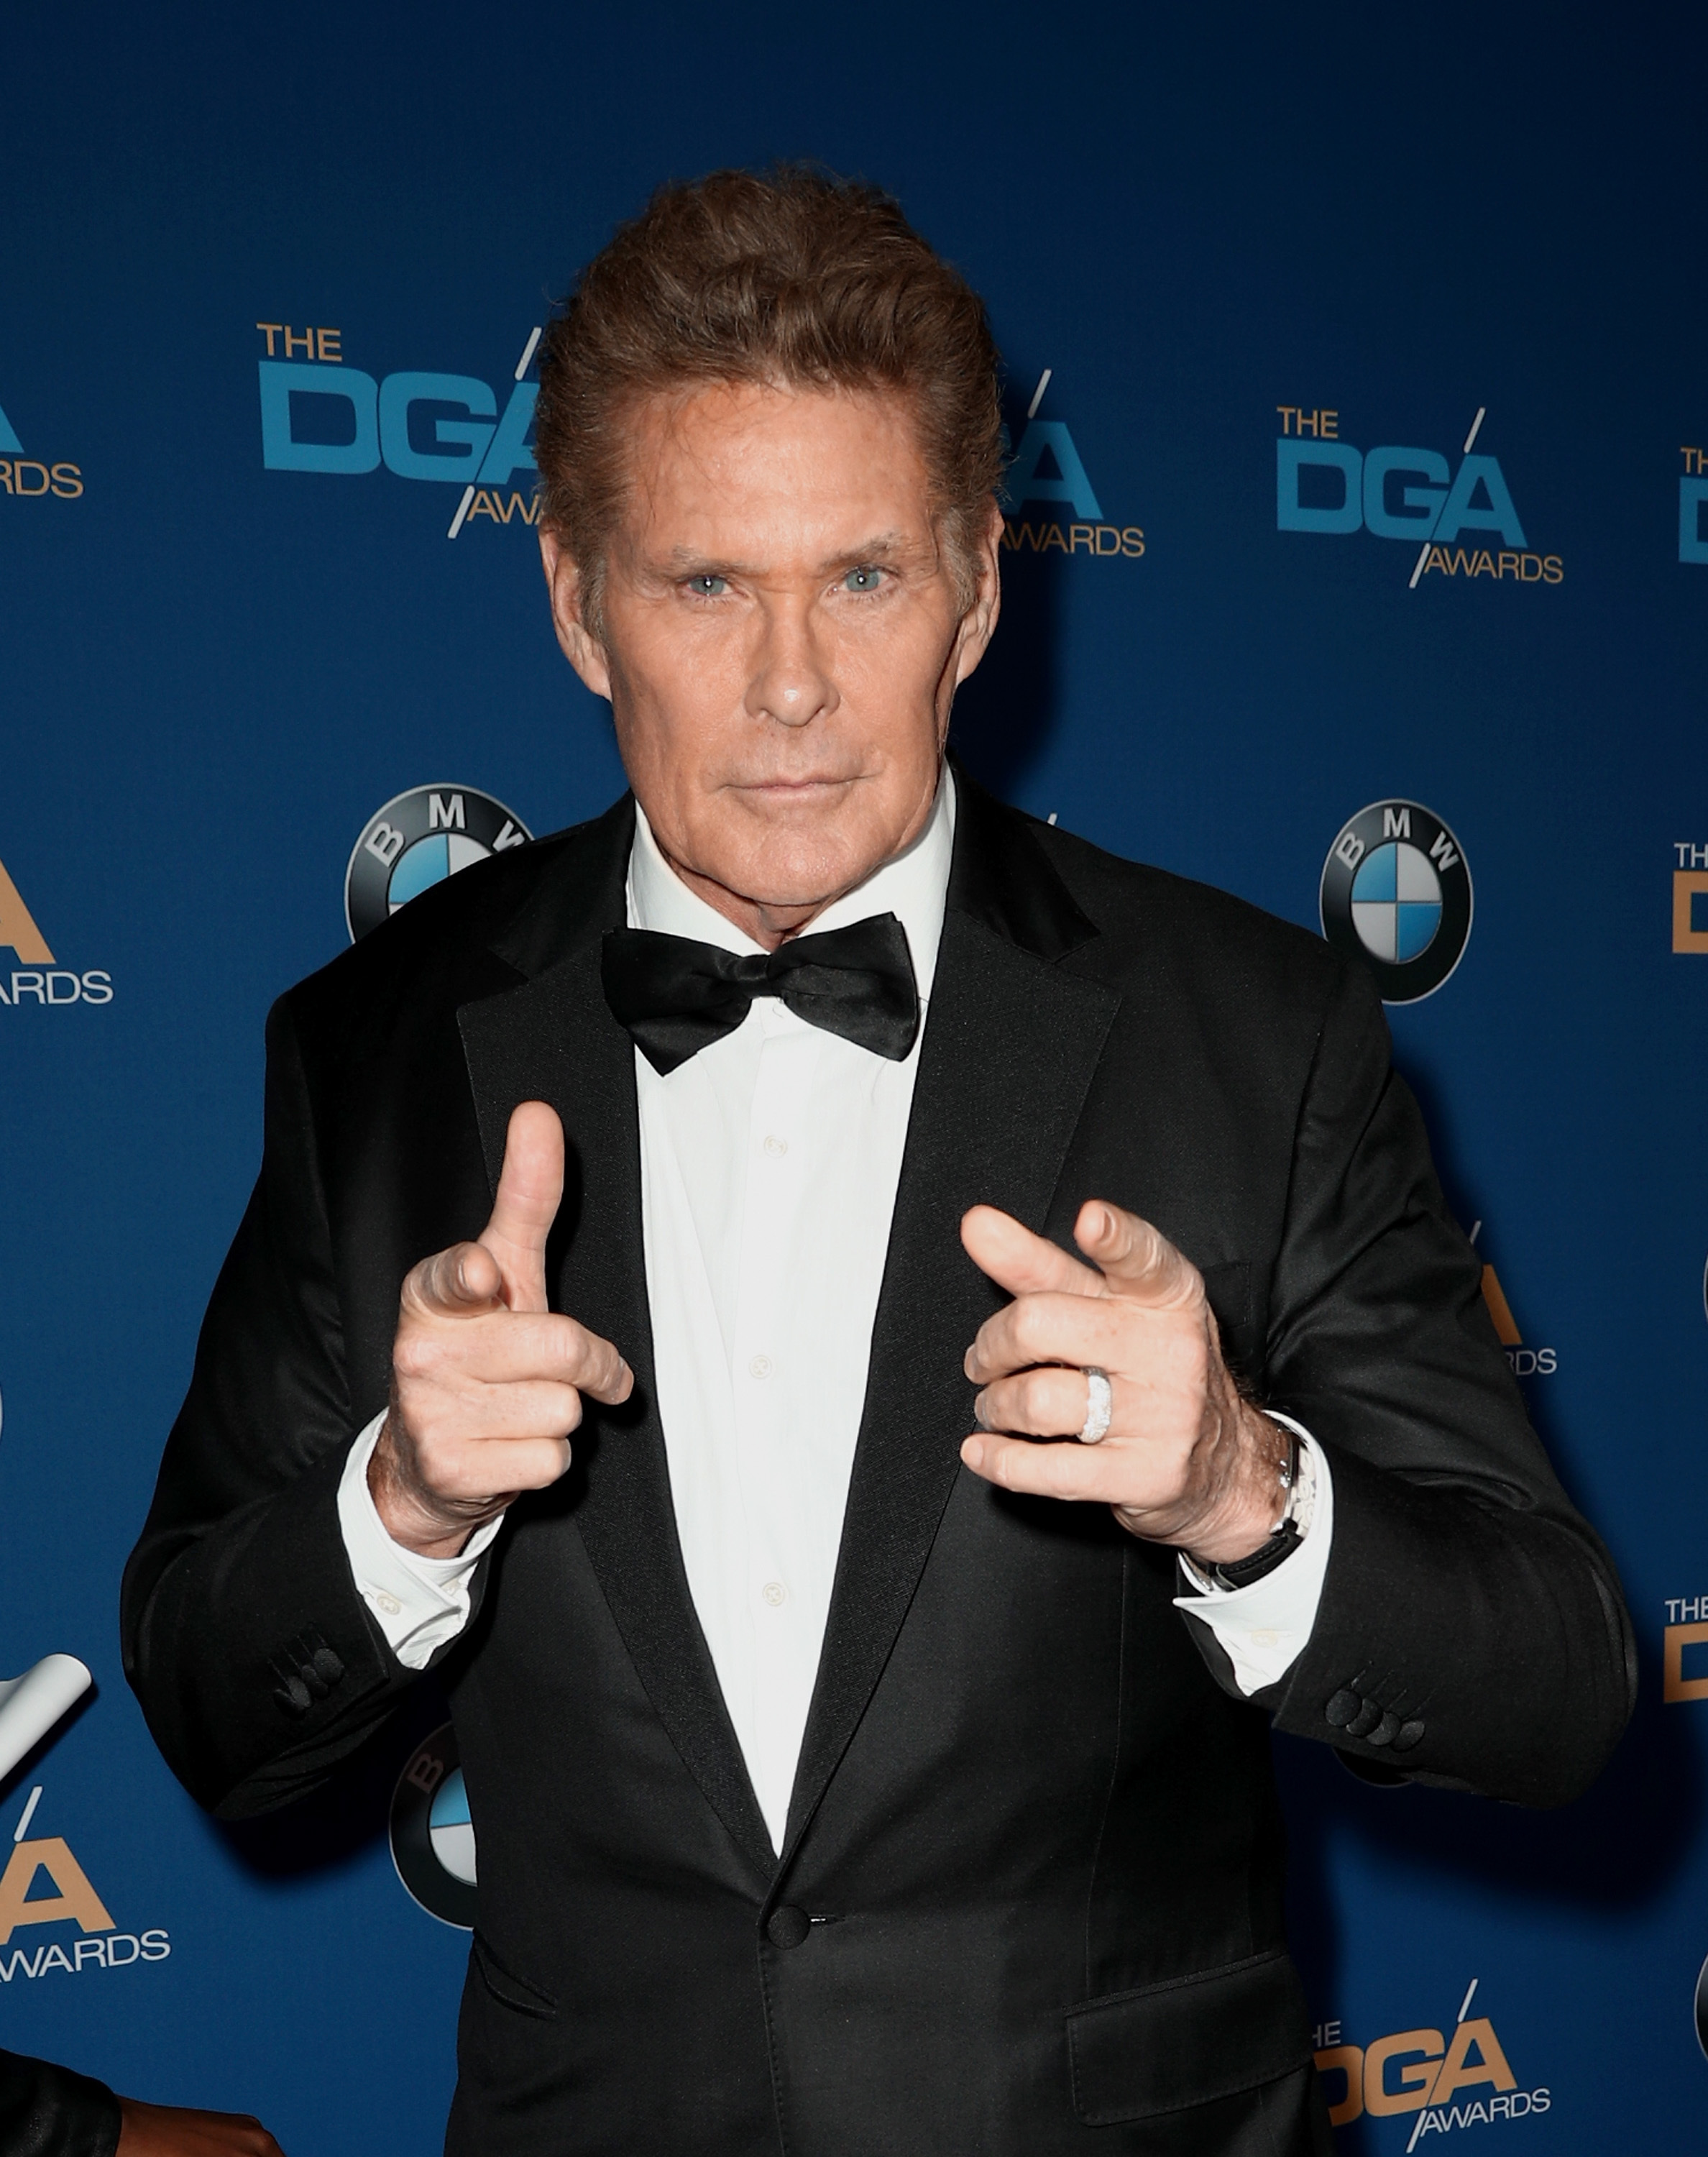 David Hasselhoff attends the 70th Annual Directors Guild Of America Awards at The Beverly Hilton Hotel in Beverly Hills, California, on Feb. 3, 2018.